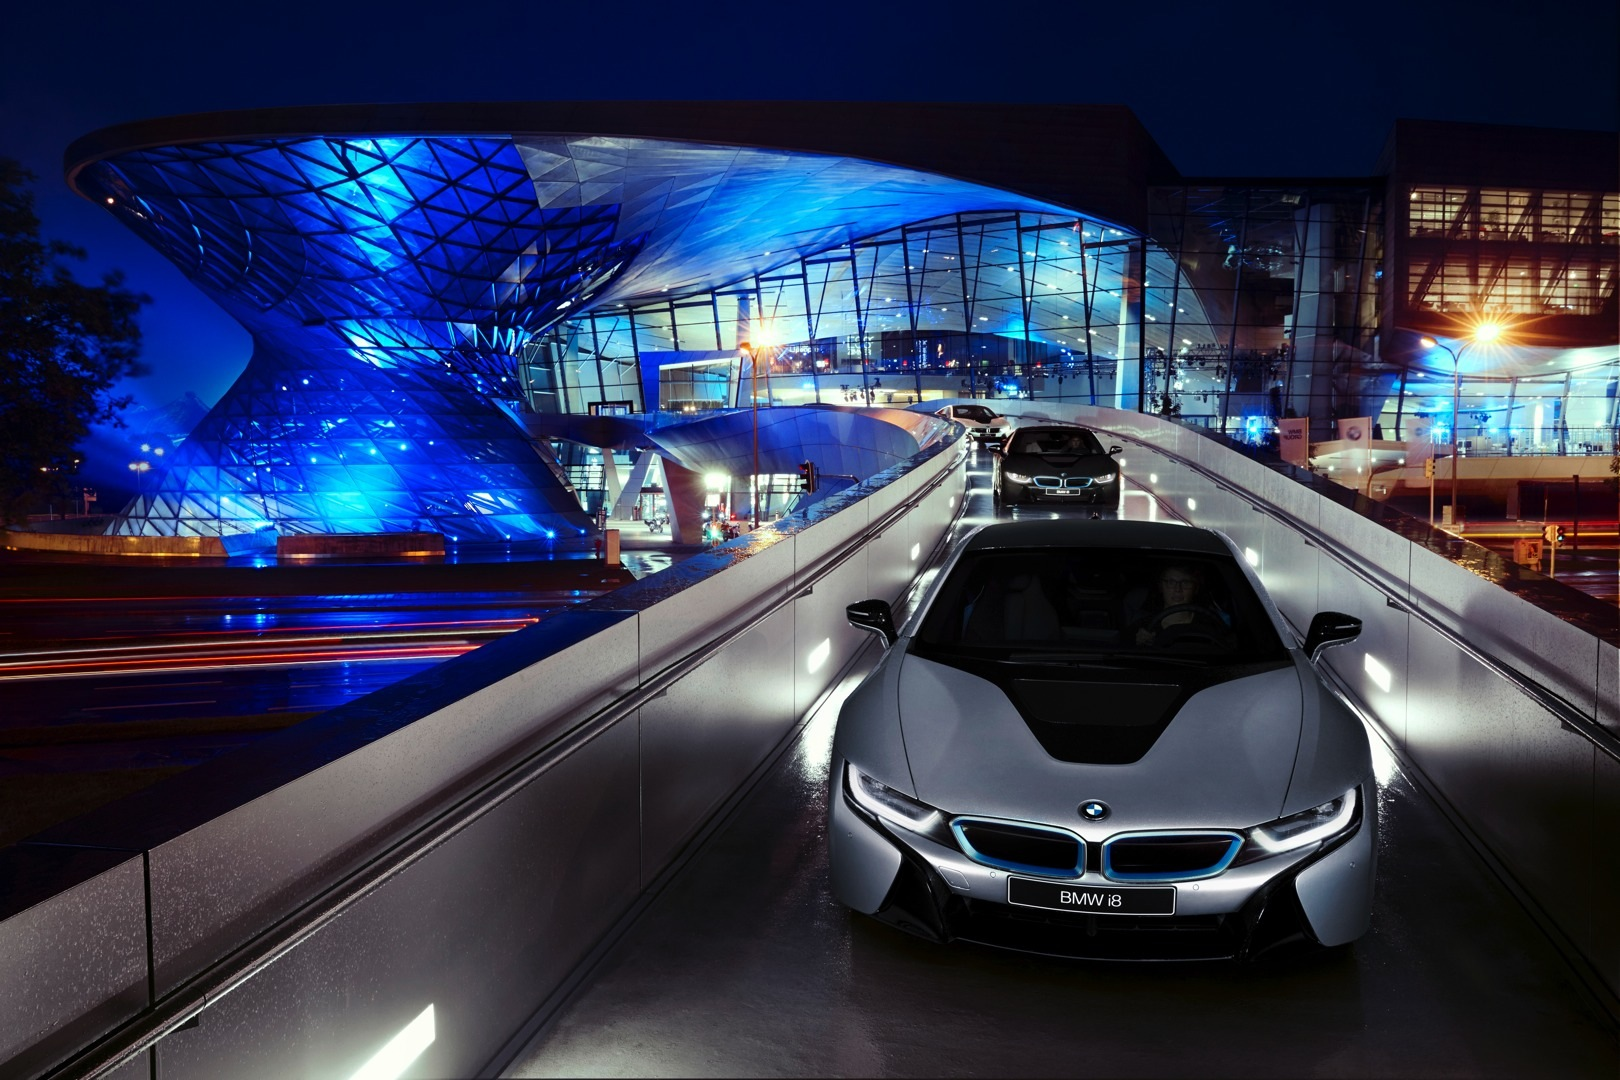 Audi Concept Car Wallpaper First Bmw I8s Delivered At Welt Museum Laser Headlight